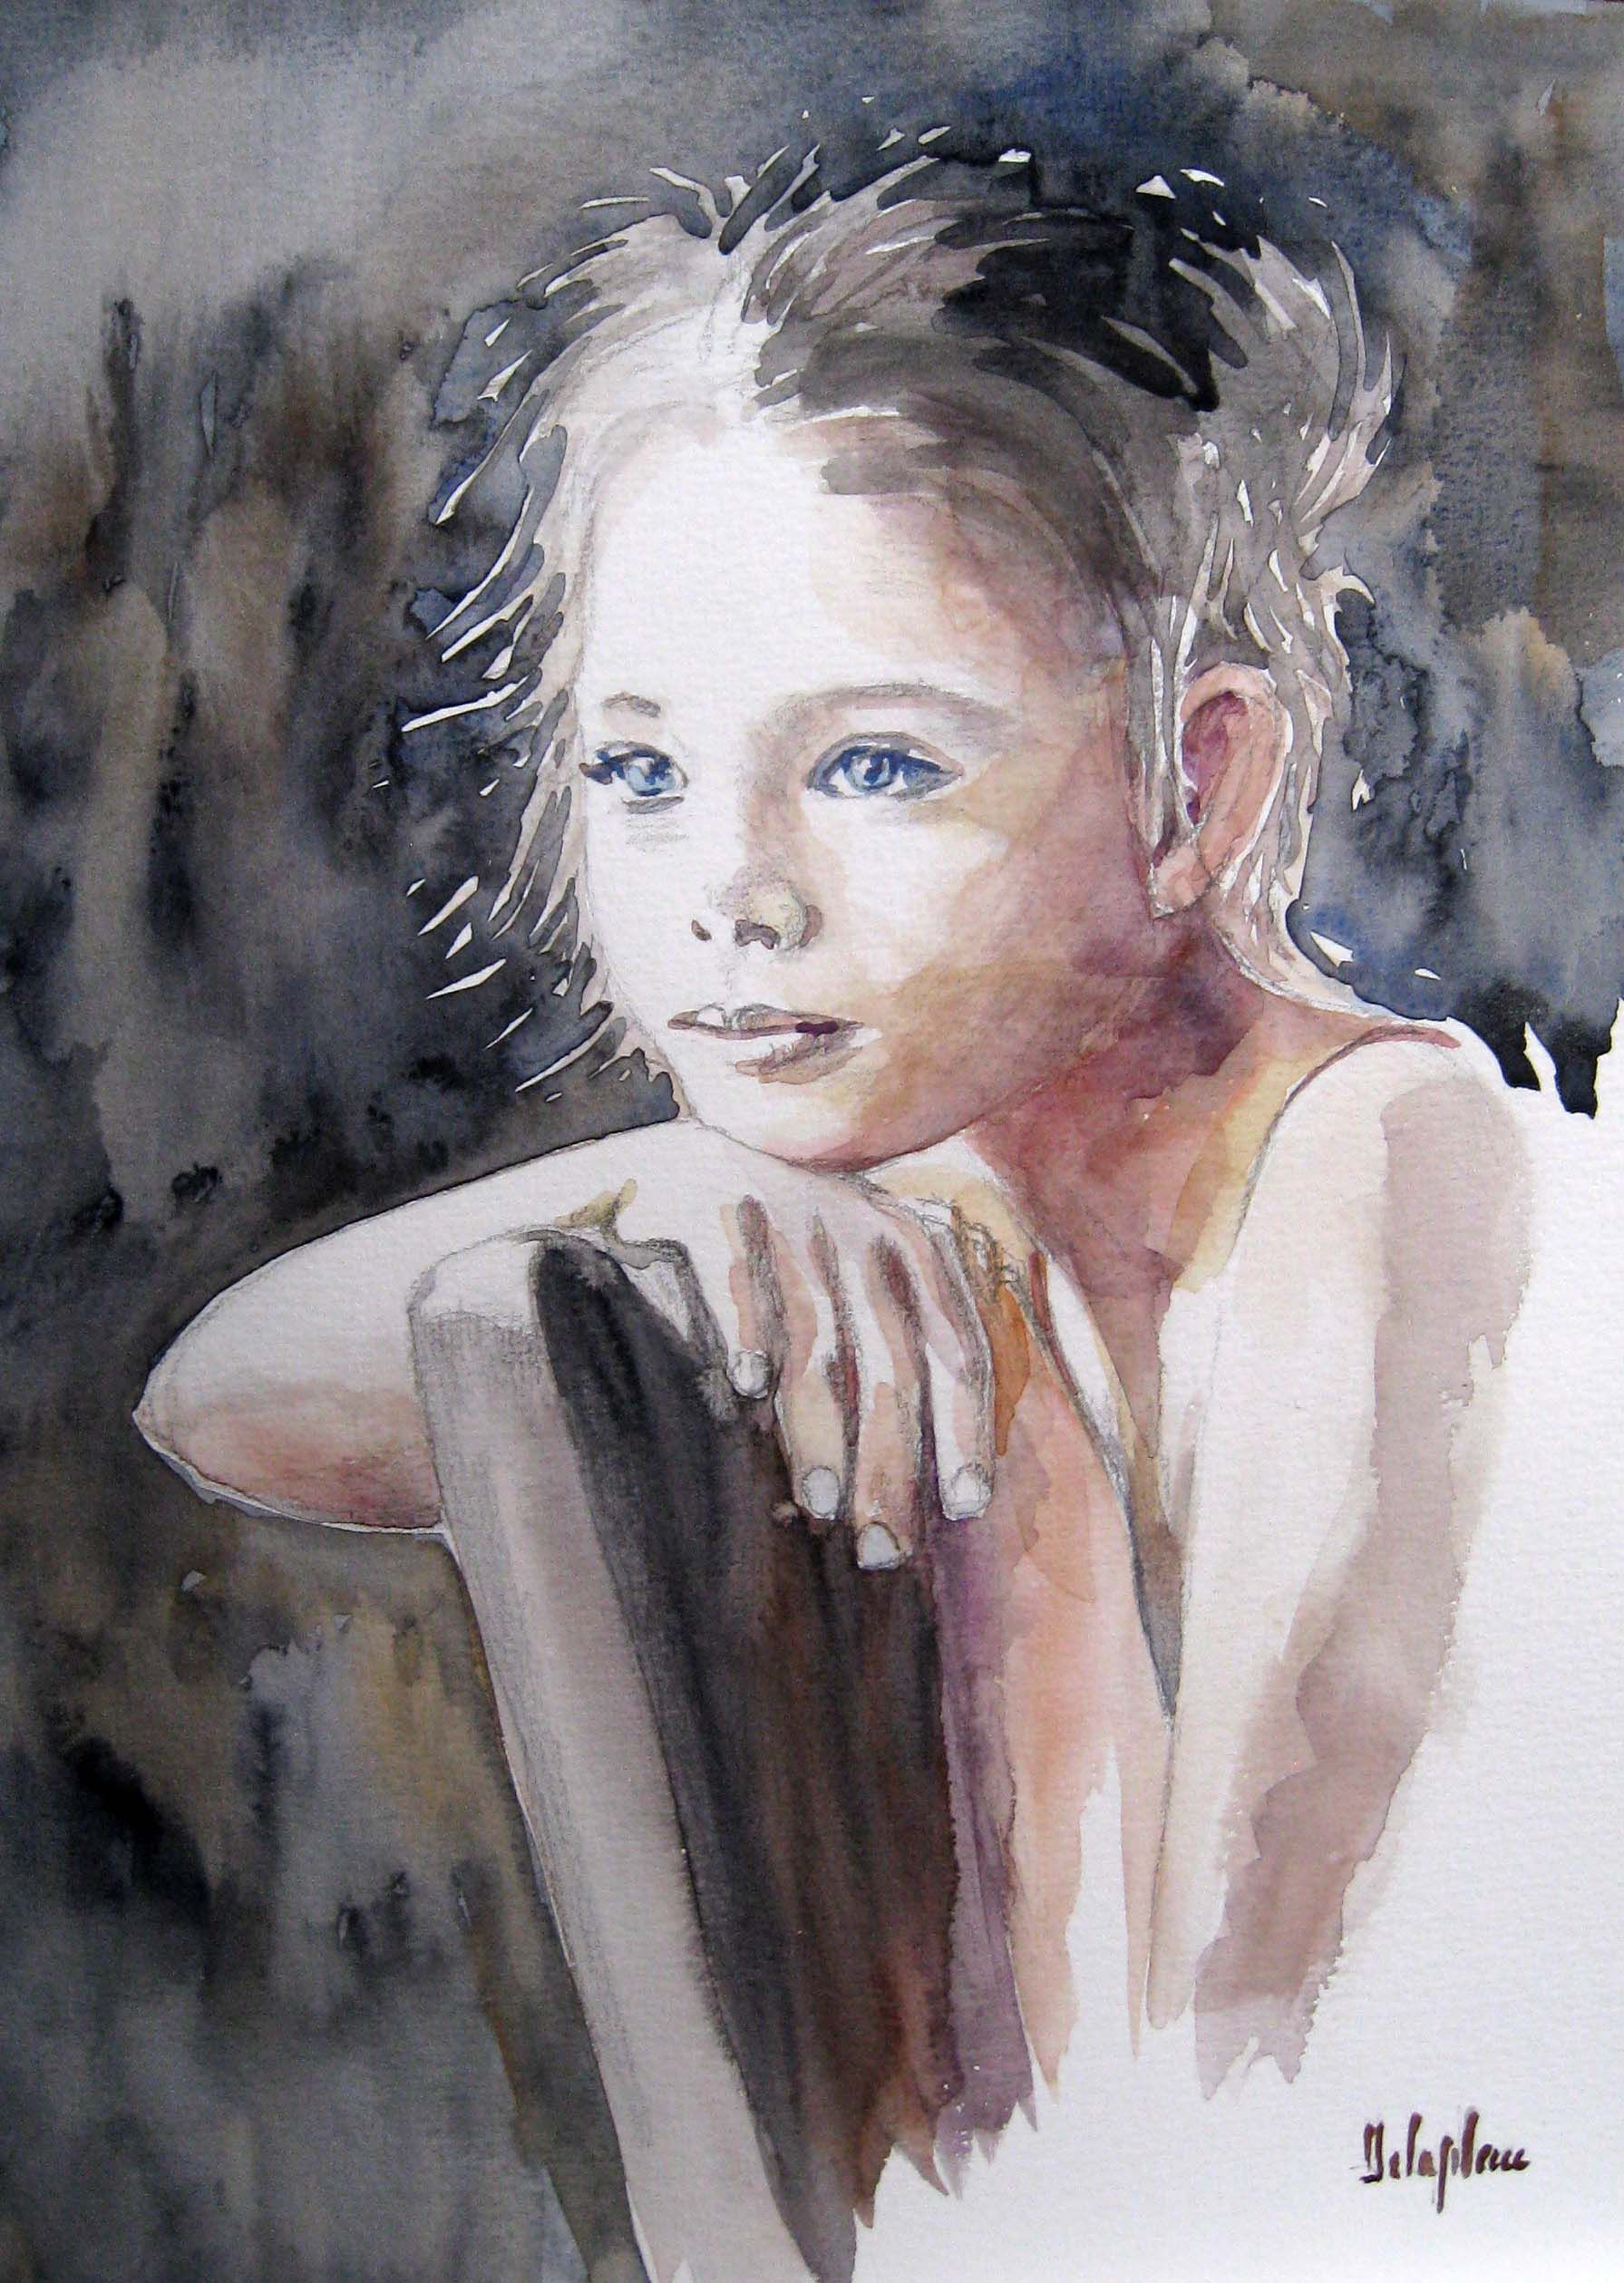 Epingle Par Armelle Delaplace Sur Portraits En Aquarelle